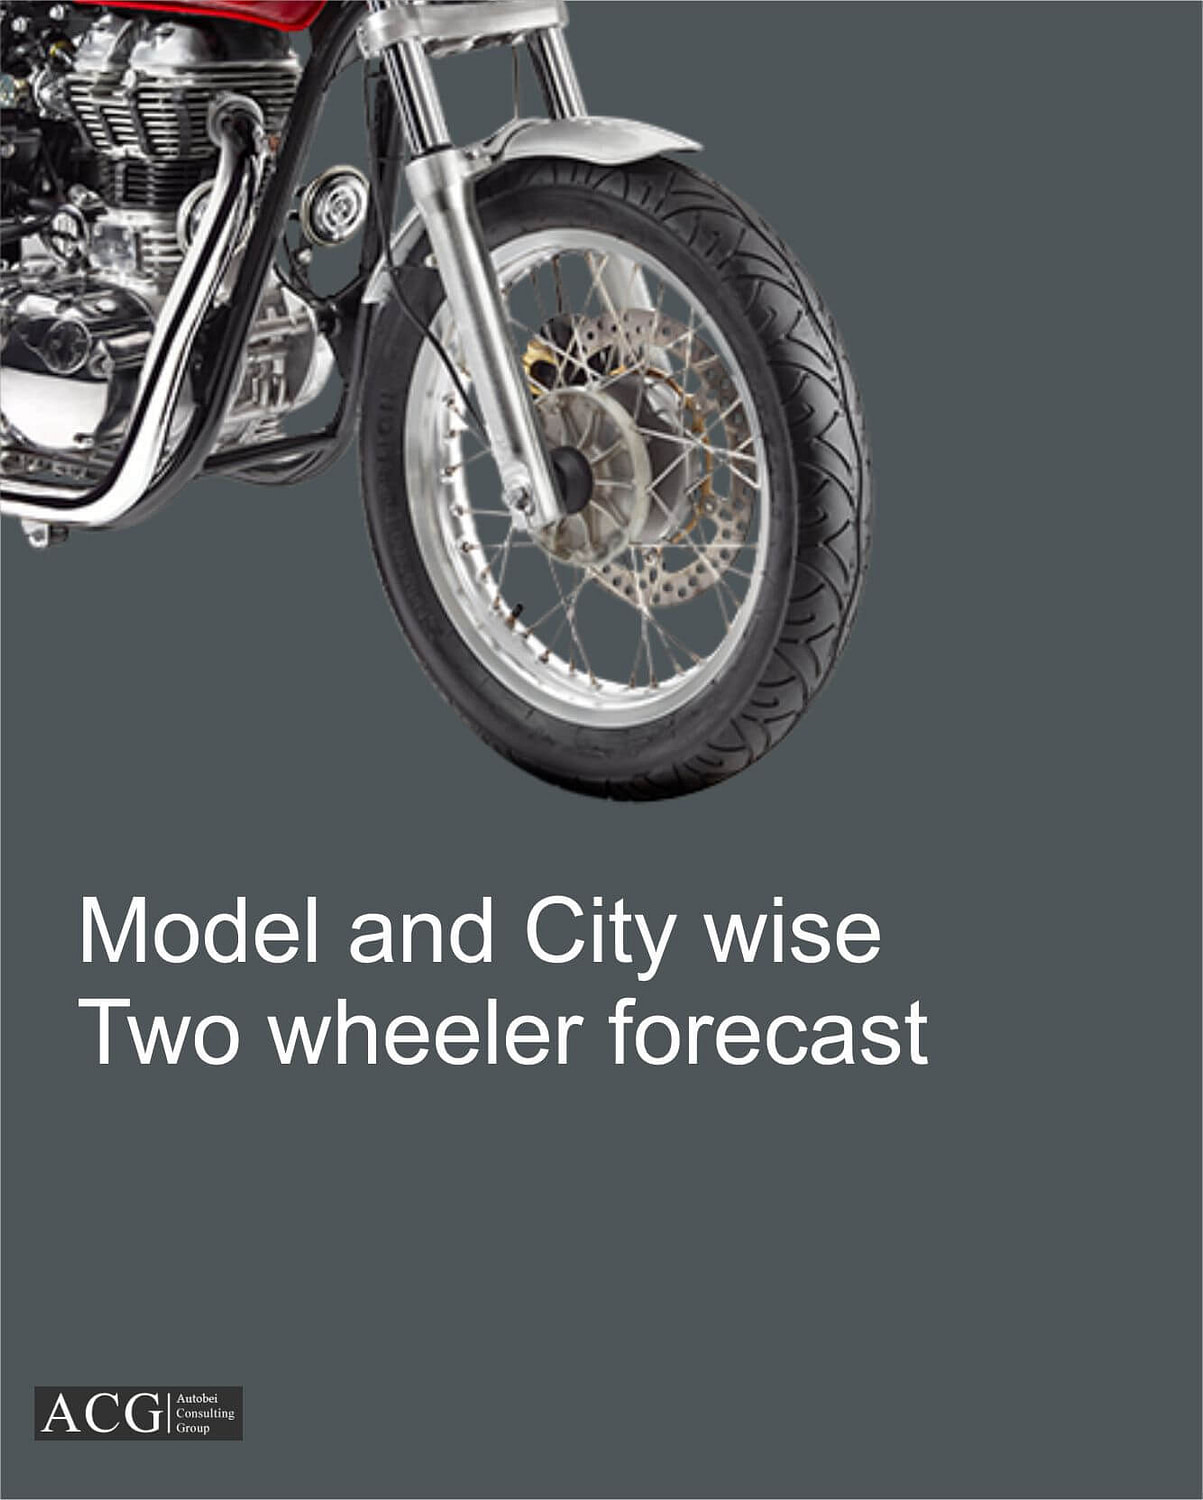 Model and City wise Two wheeler forecast